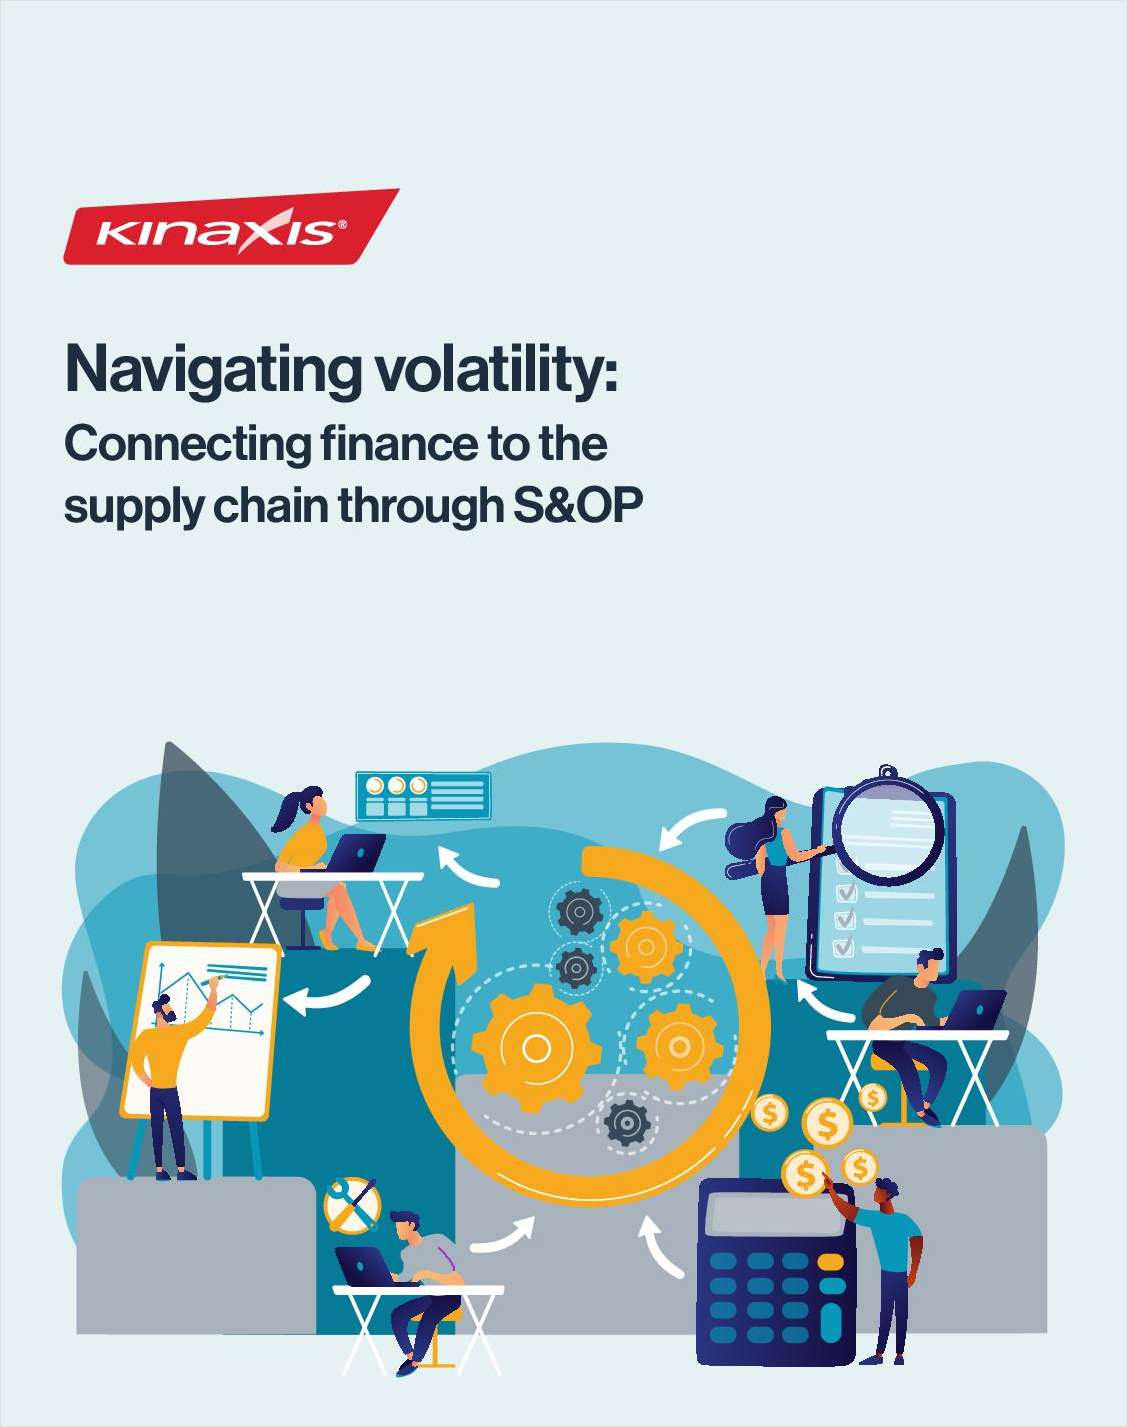 Connecting Finance to the Supply Chain Through S&OP